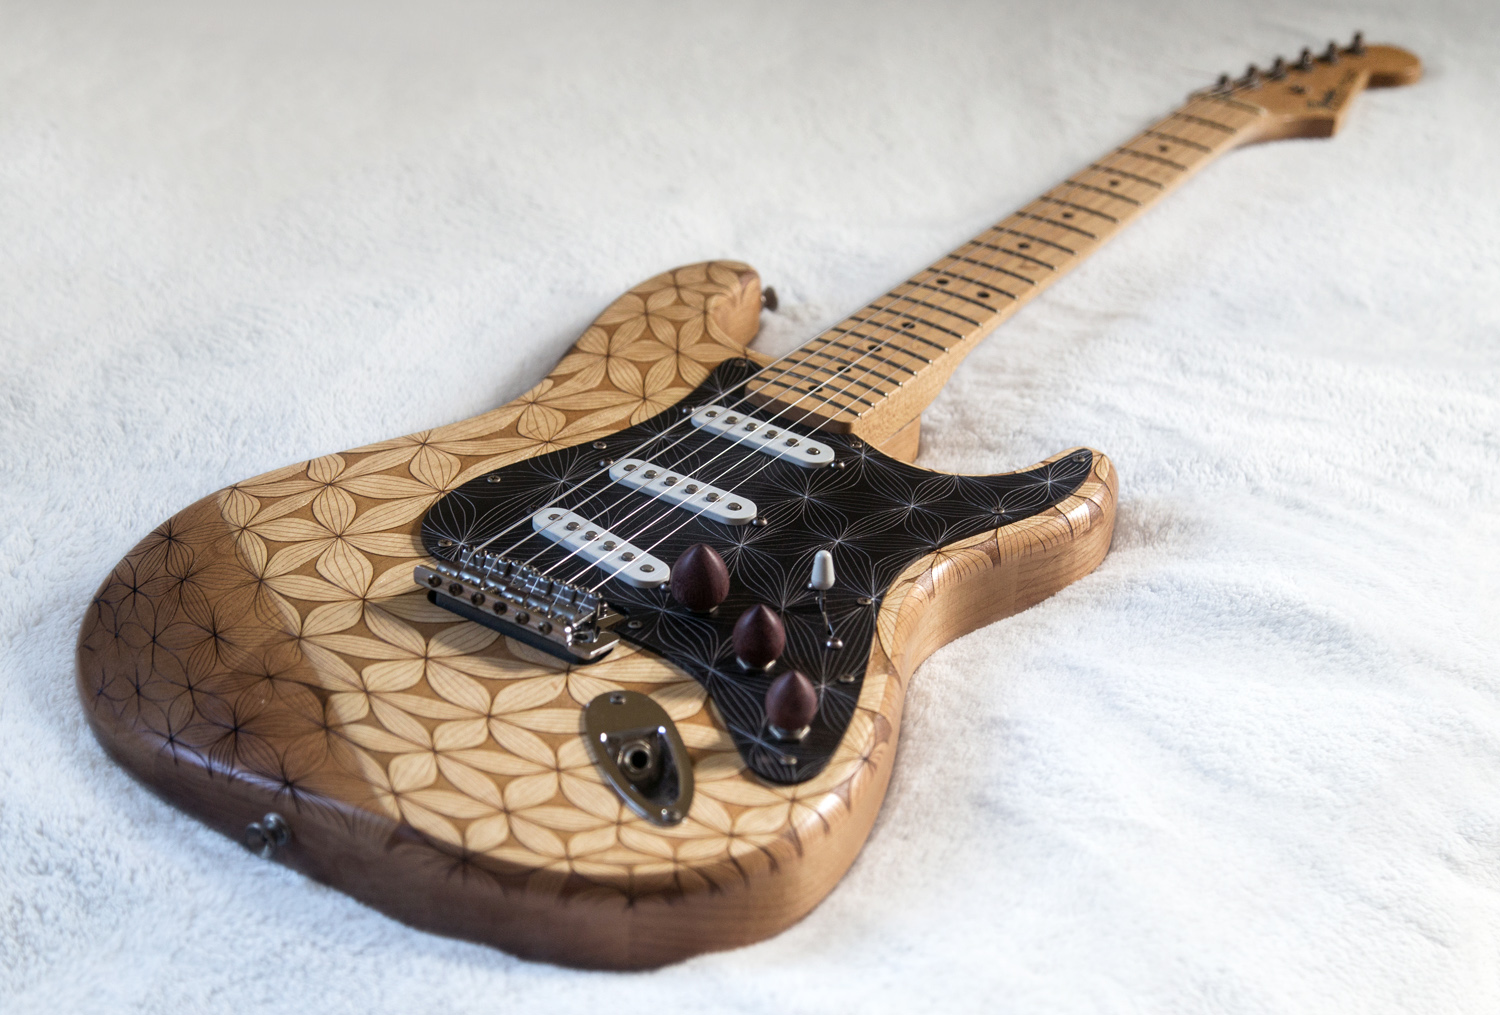 Bringing a Guitar Back to Life with Lasers